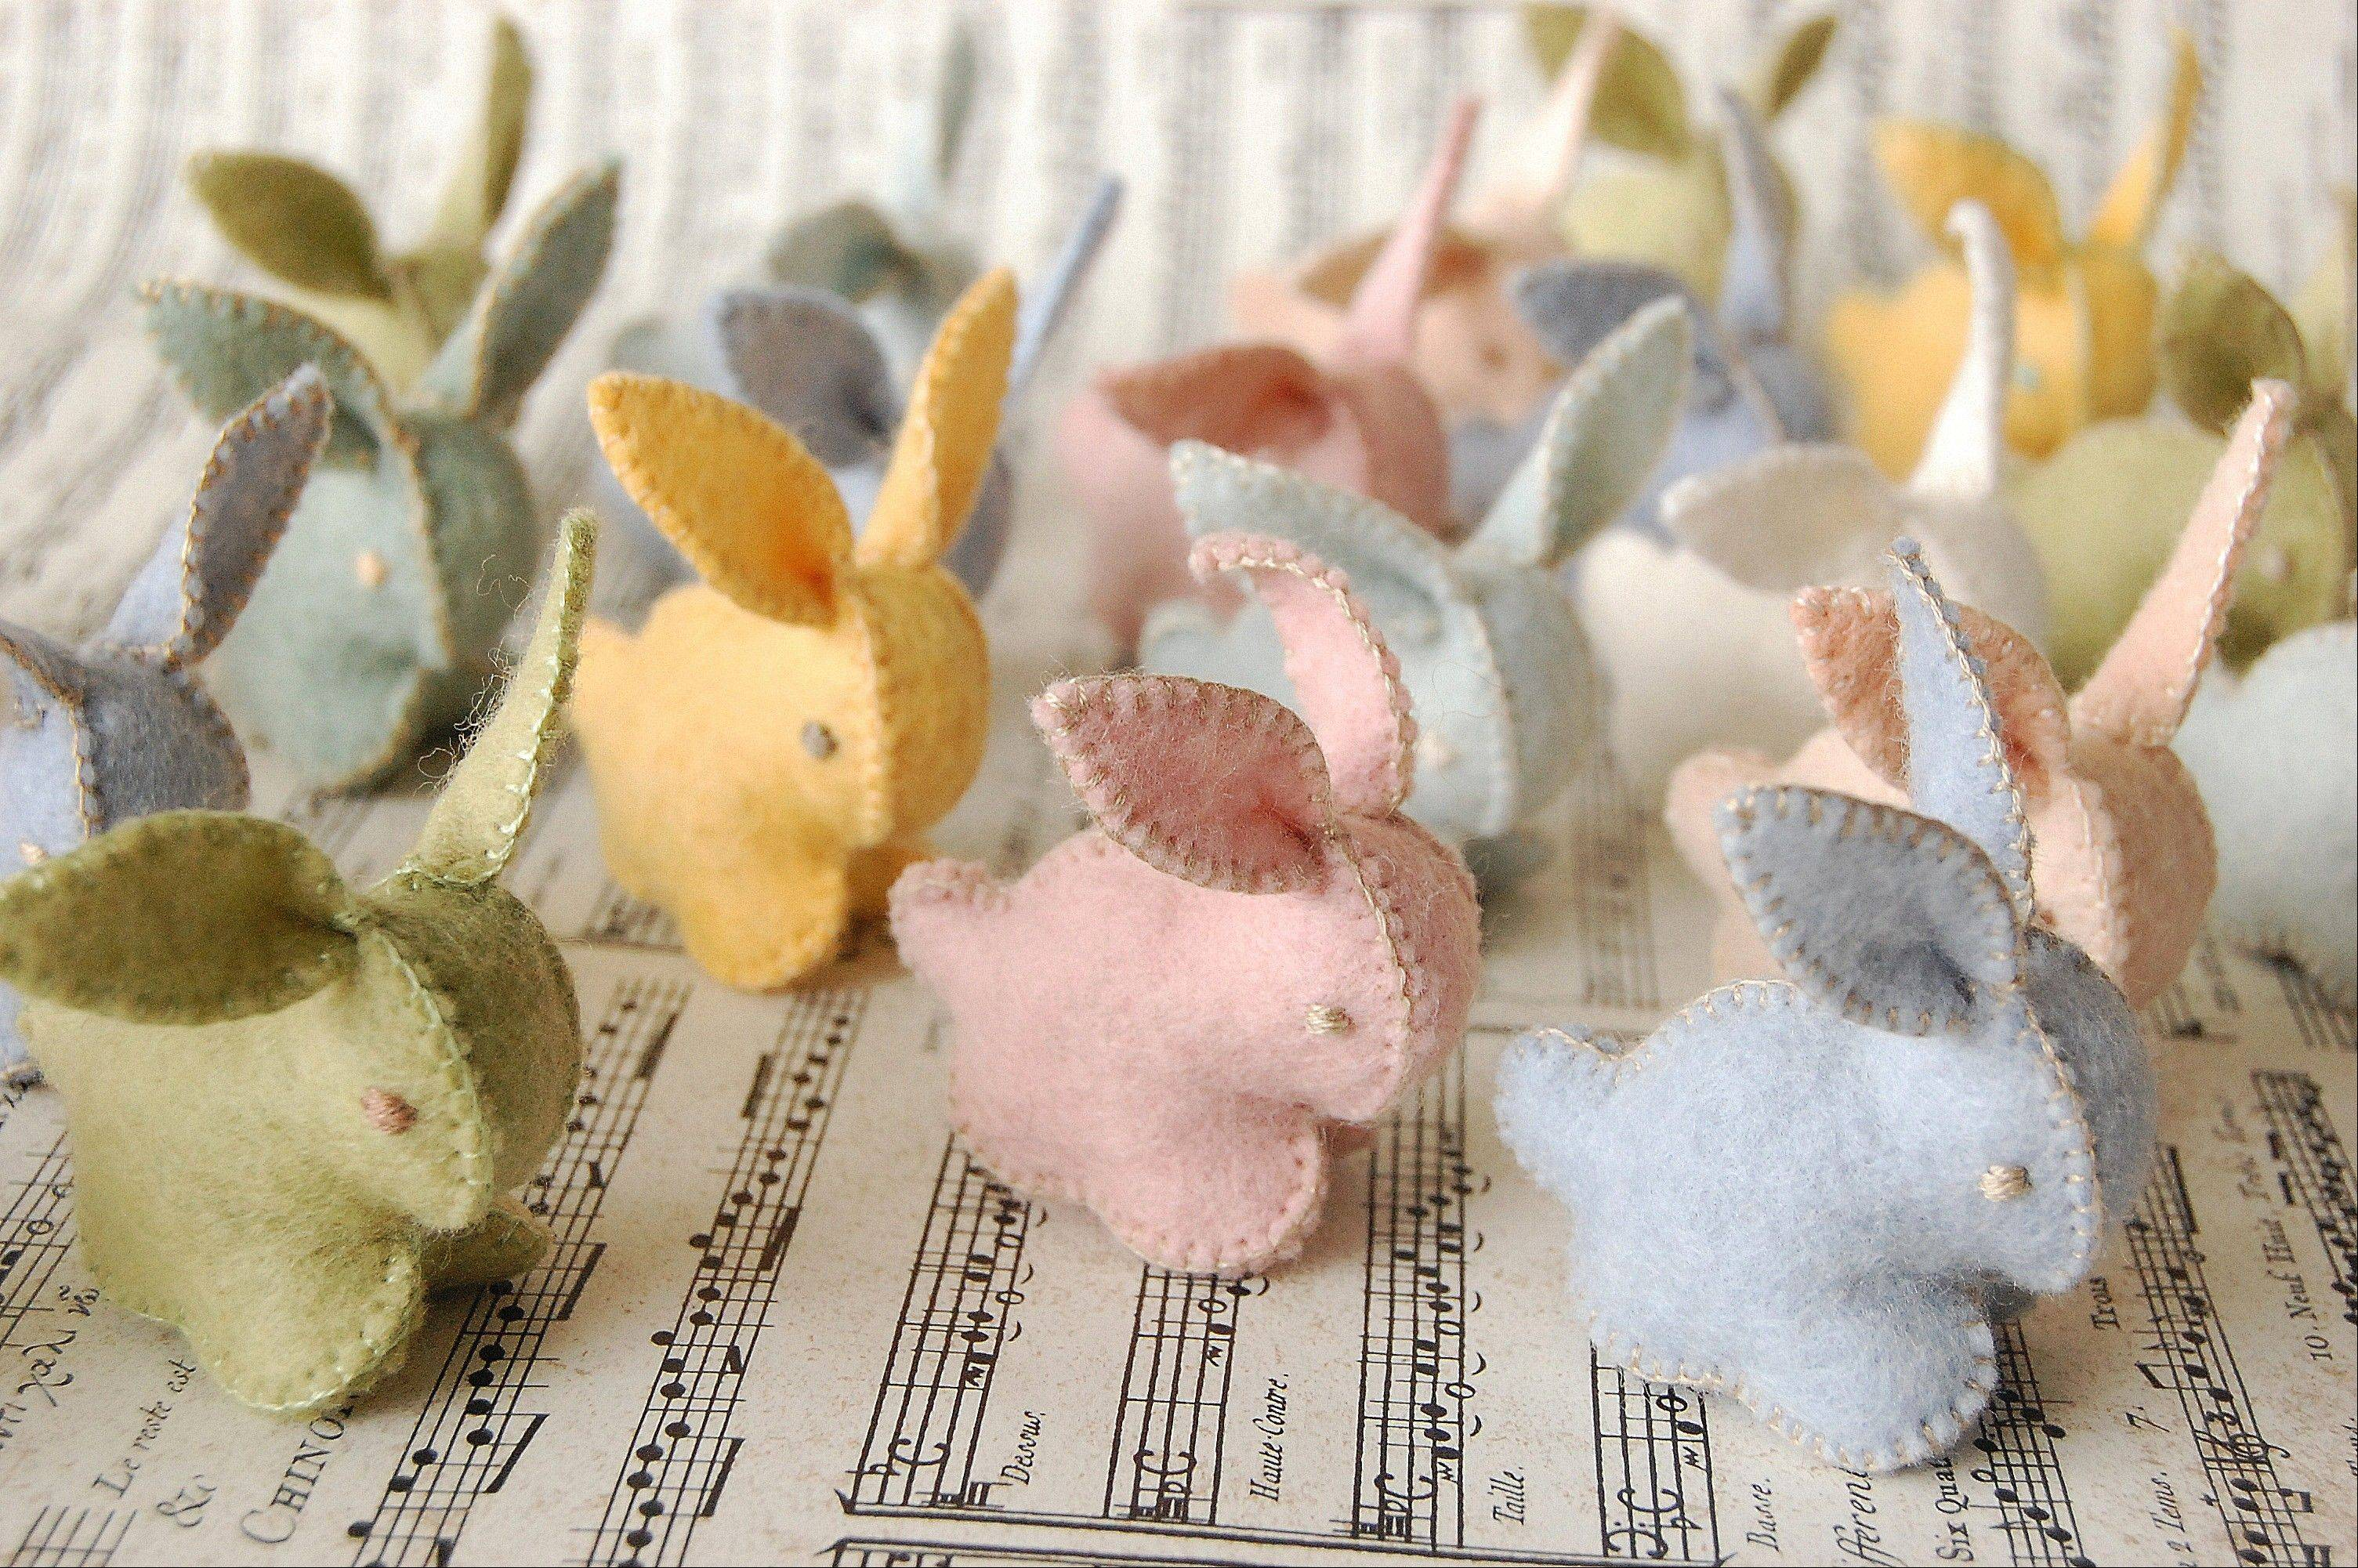 Larsen uses merino wool to make all the felt, dyes the colors and stitches every toy by hand.